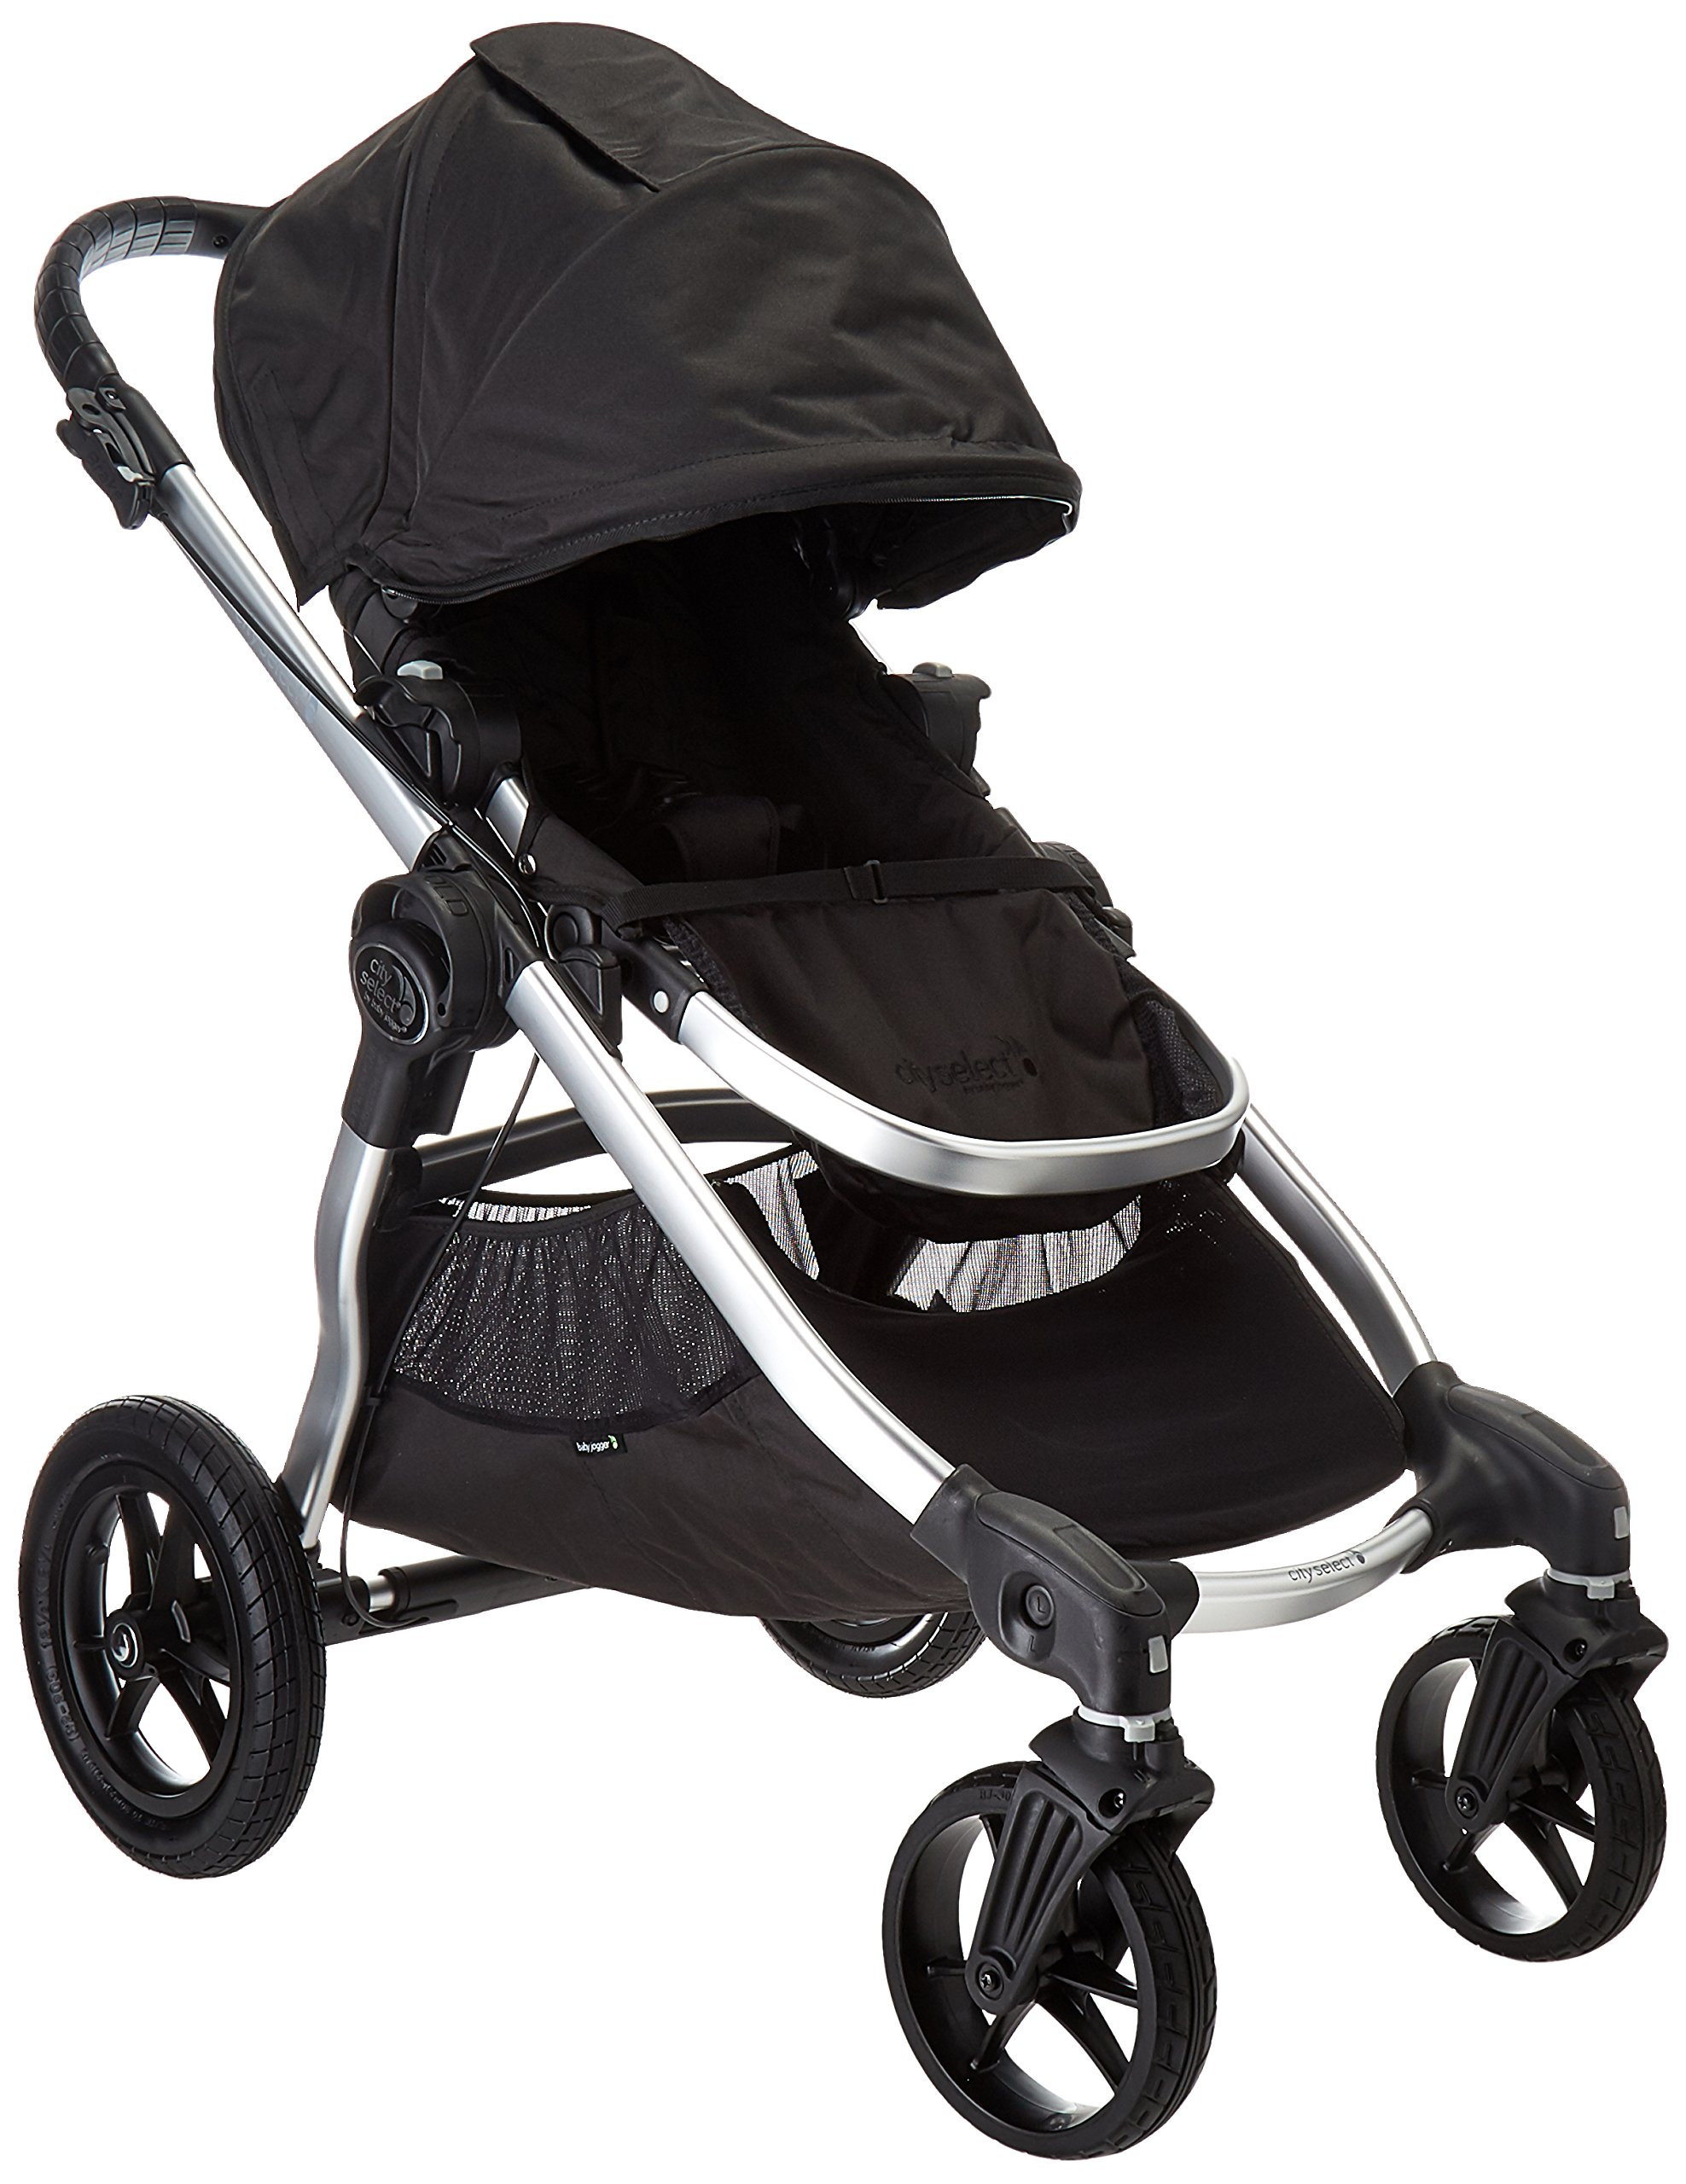 Baby Jogger 2016 City Select Single Stroller - Onyx by Baby Jogger